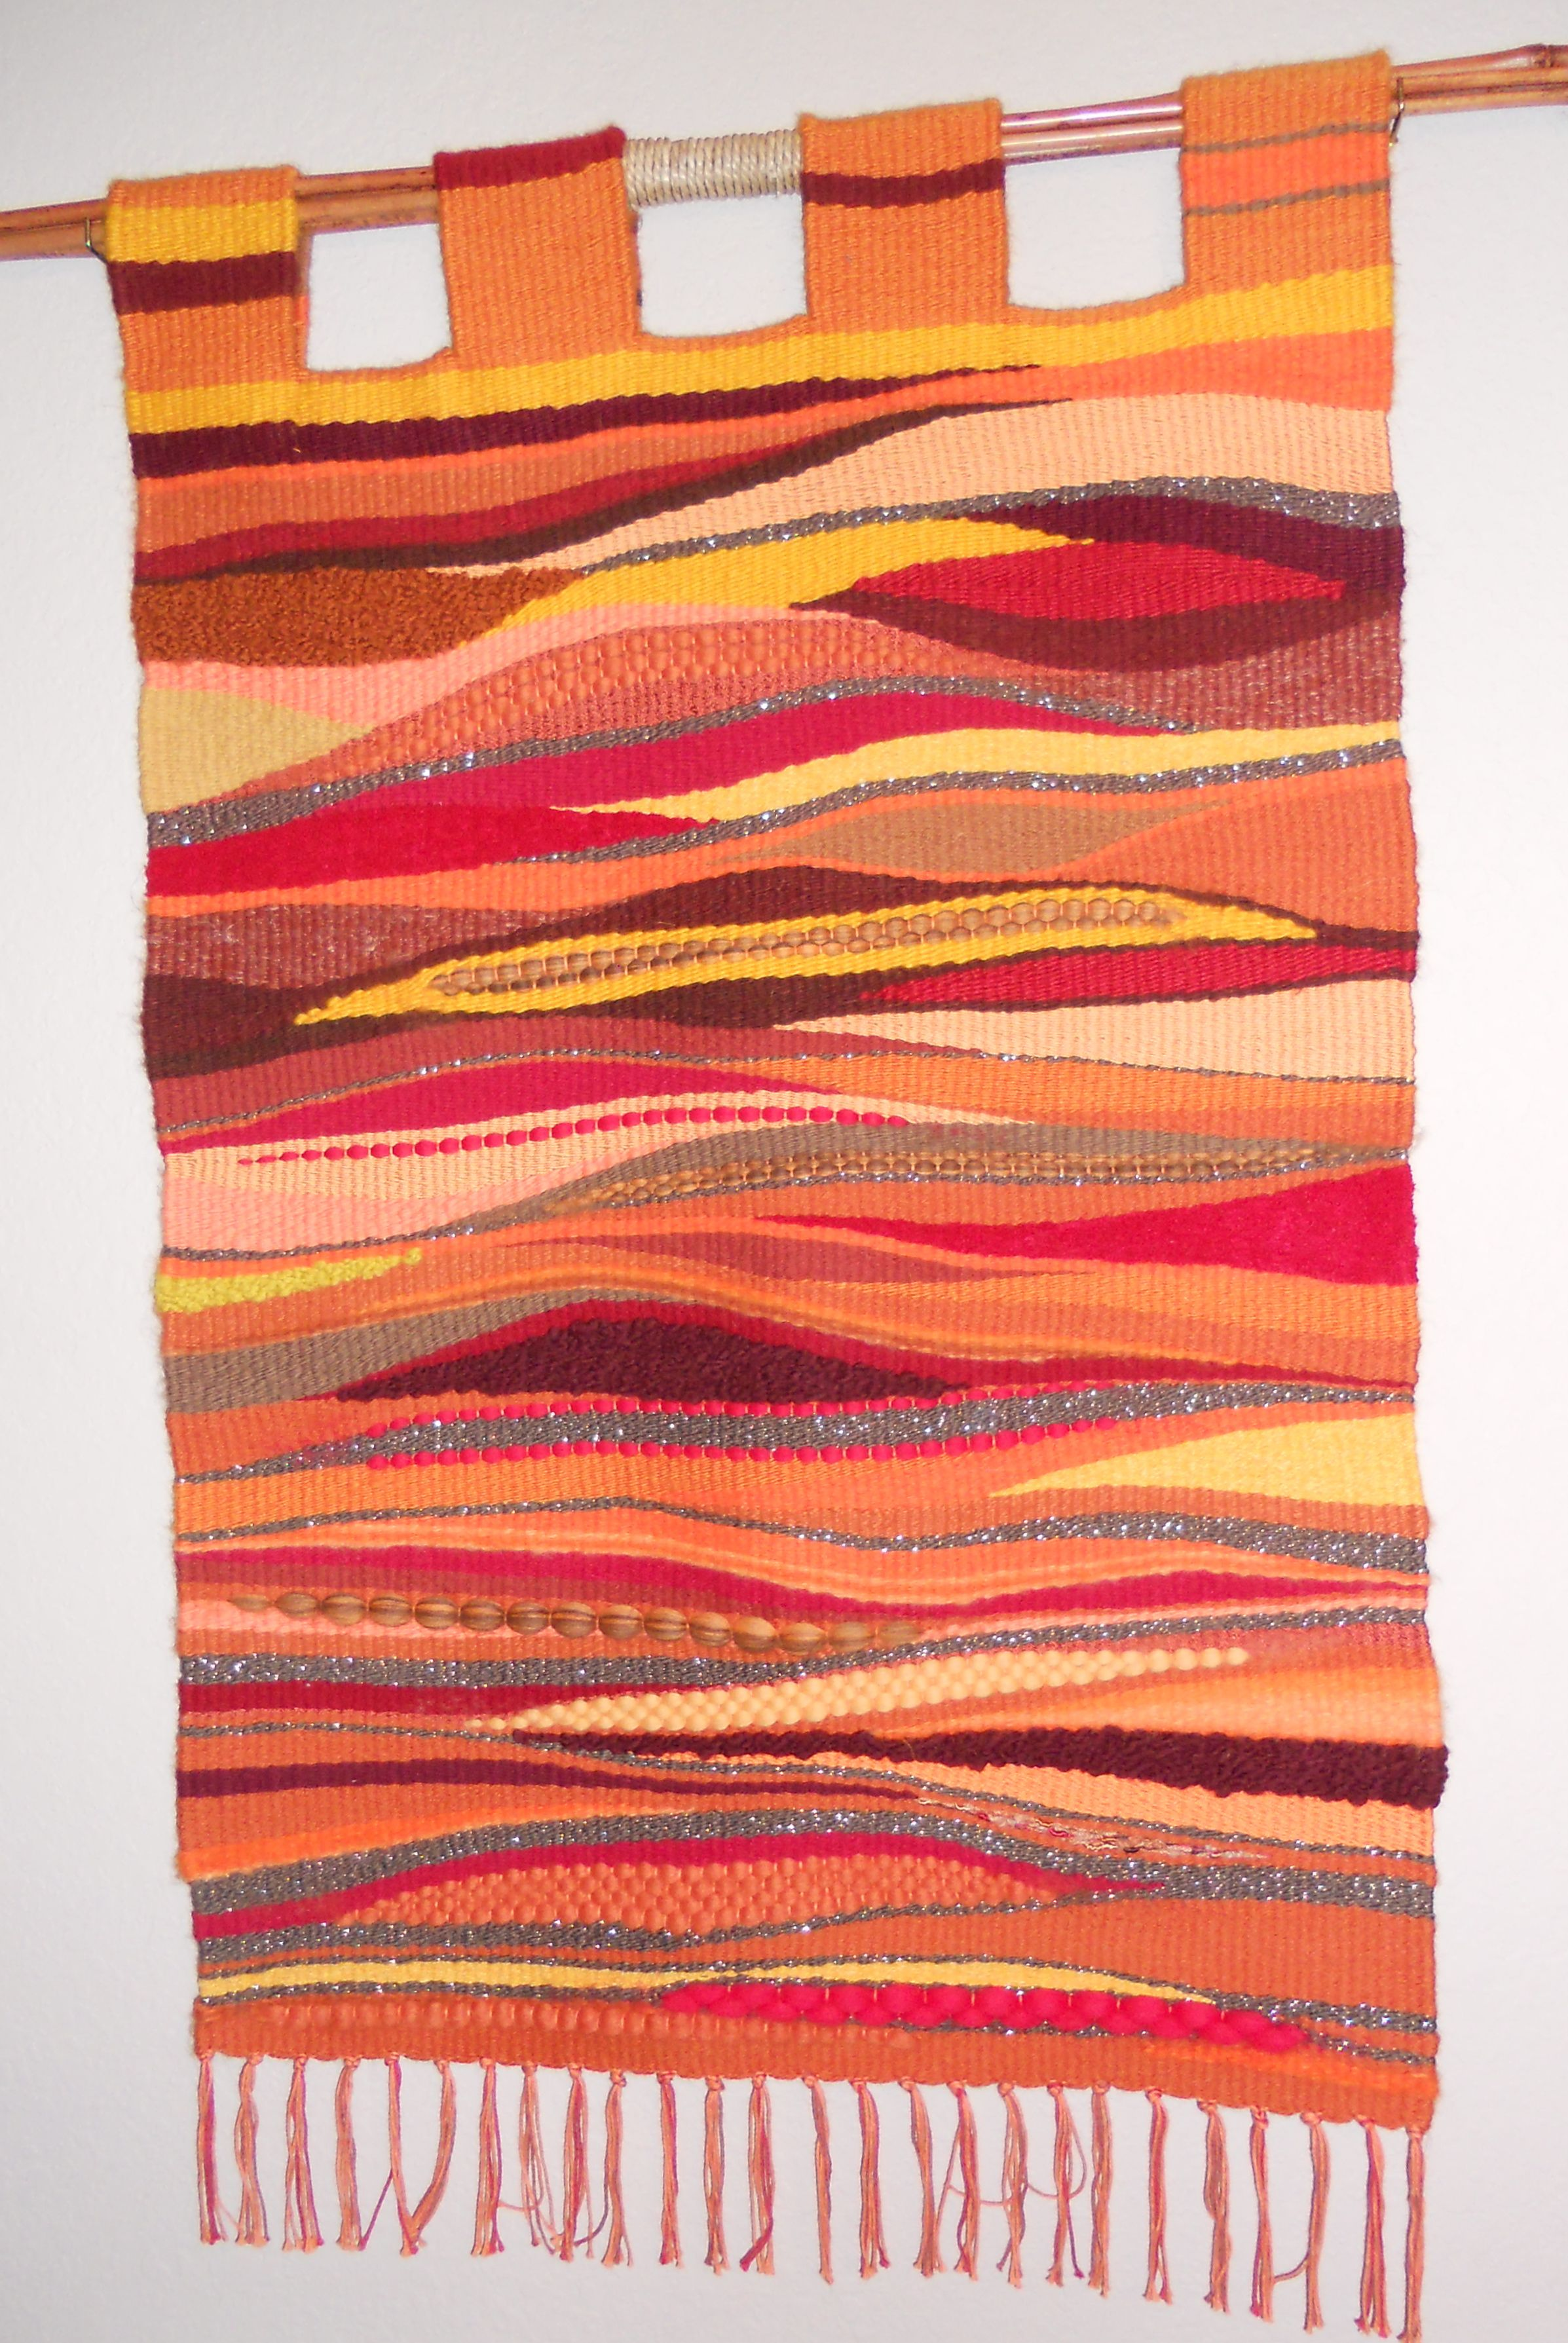 Woven Tapestry Wall Hangings this wall hanging was done on a traditional floor loom but was